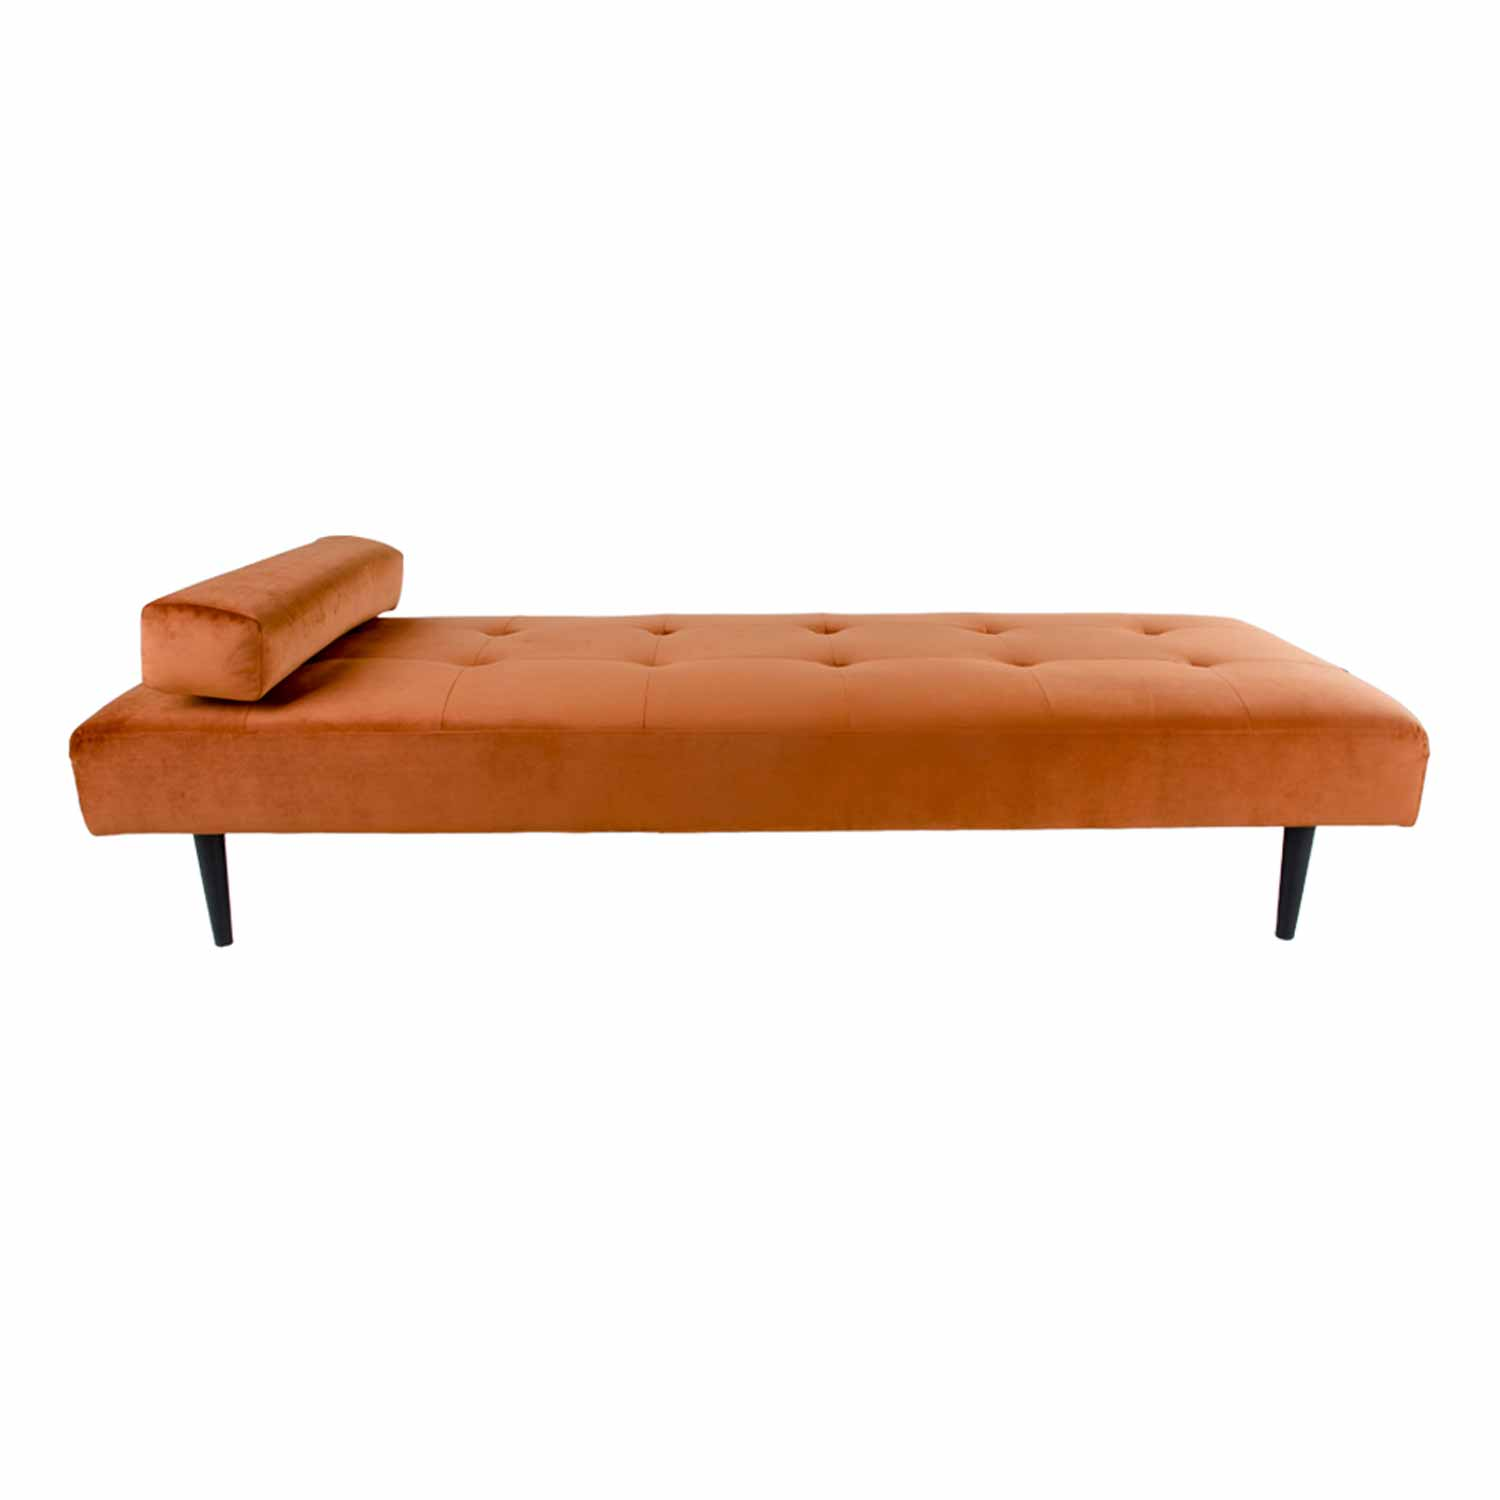 HOUSE NORDIC Capri daybed - orange velour/træ, inkl. pude